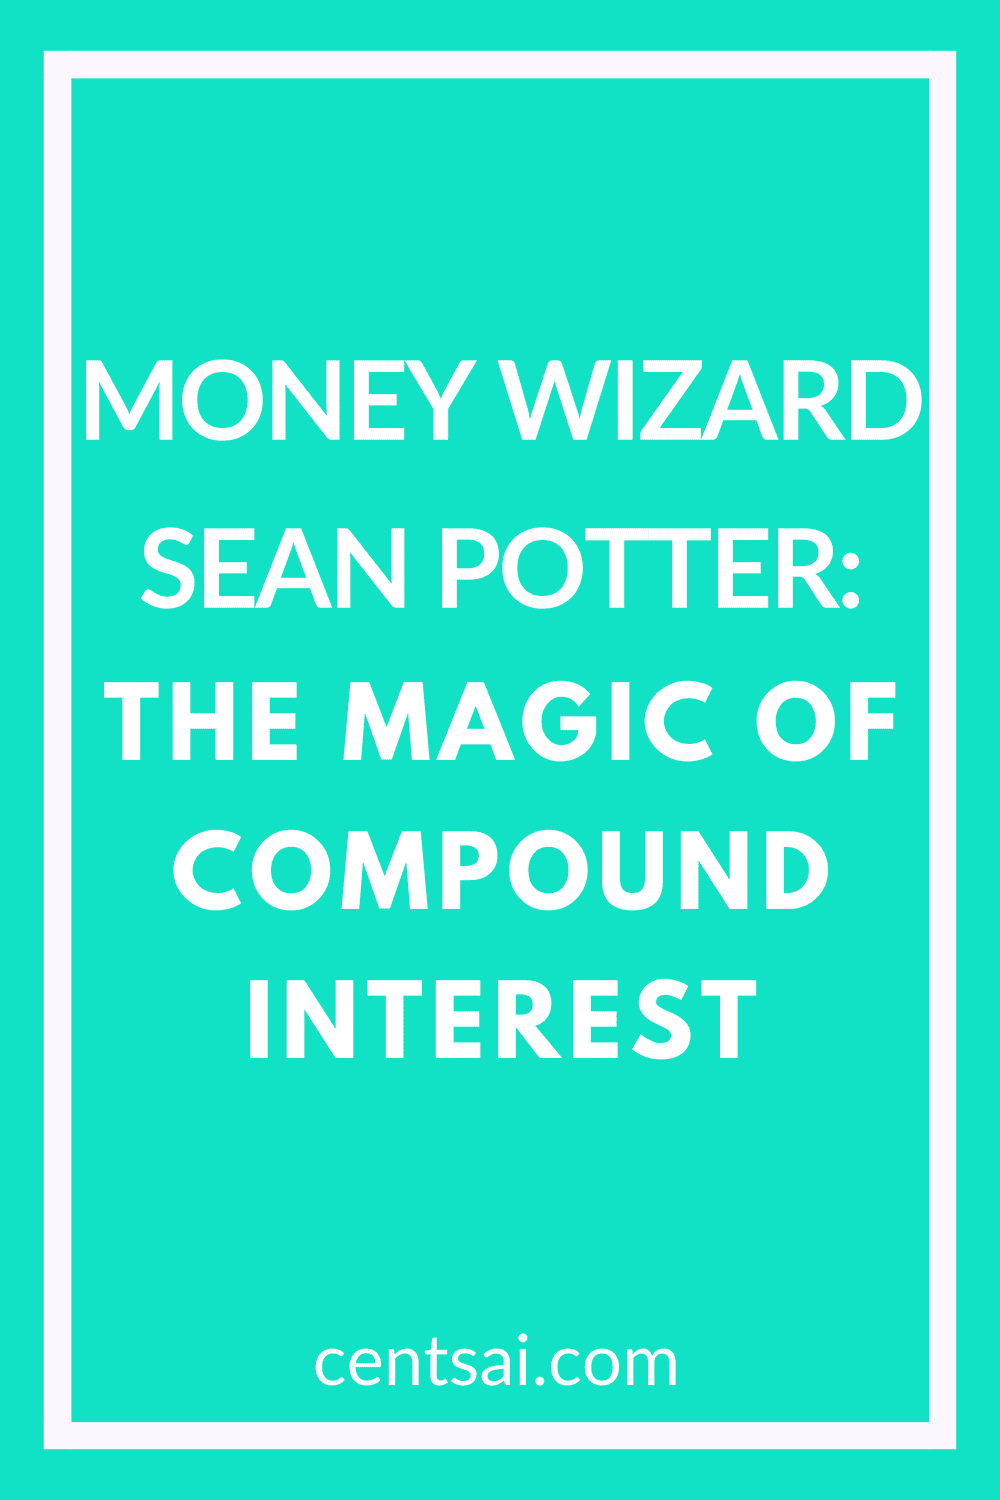 Money Wizard Sean Potter: The Magic of Compound Interest. My Money Wizard blogger Sean Potter discusses childhood money memories and the magic of compound interest. Check out his tips for teaching kids about money. #compoundinterest #money #personalfinance #moneywizard